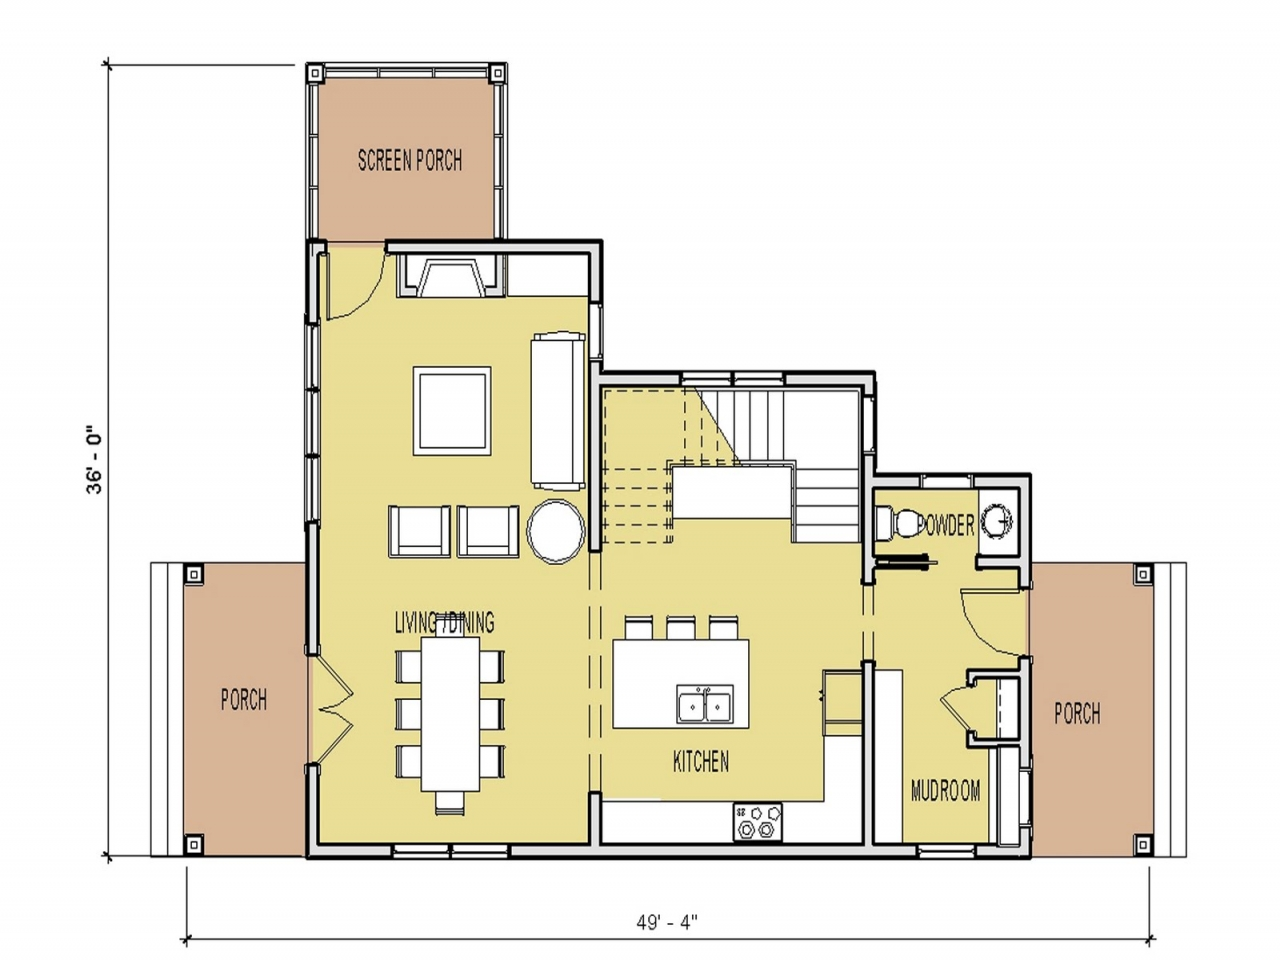 Small house floor plans under 1000 sq ft unique small Small home floor plans under 1000 sq ft